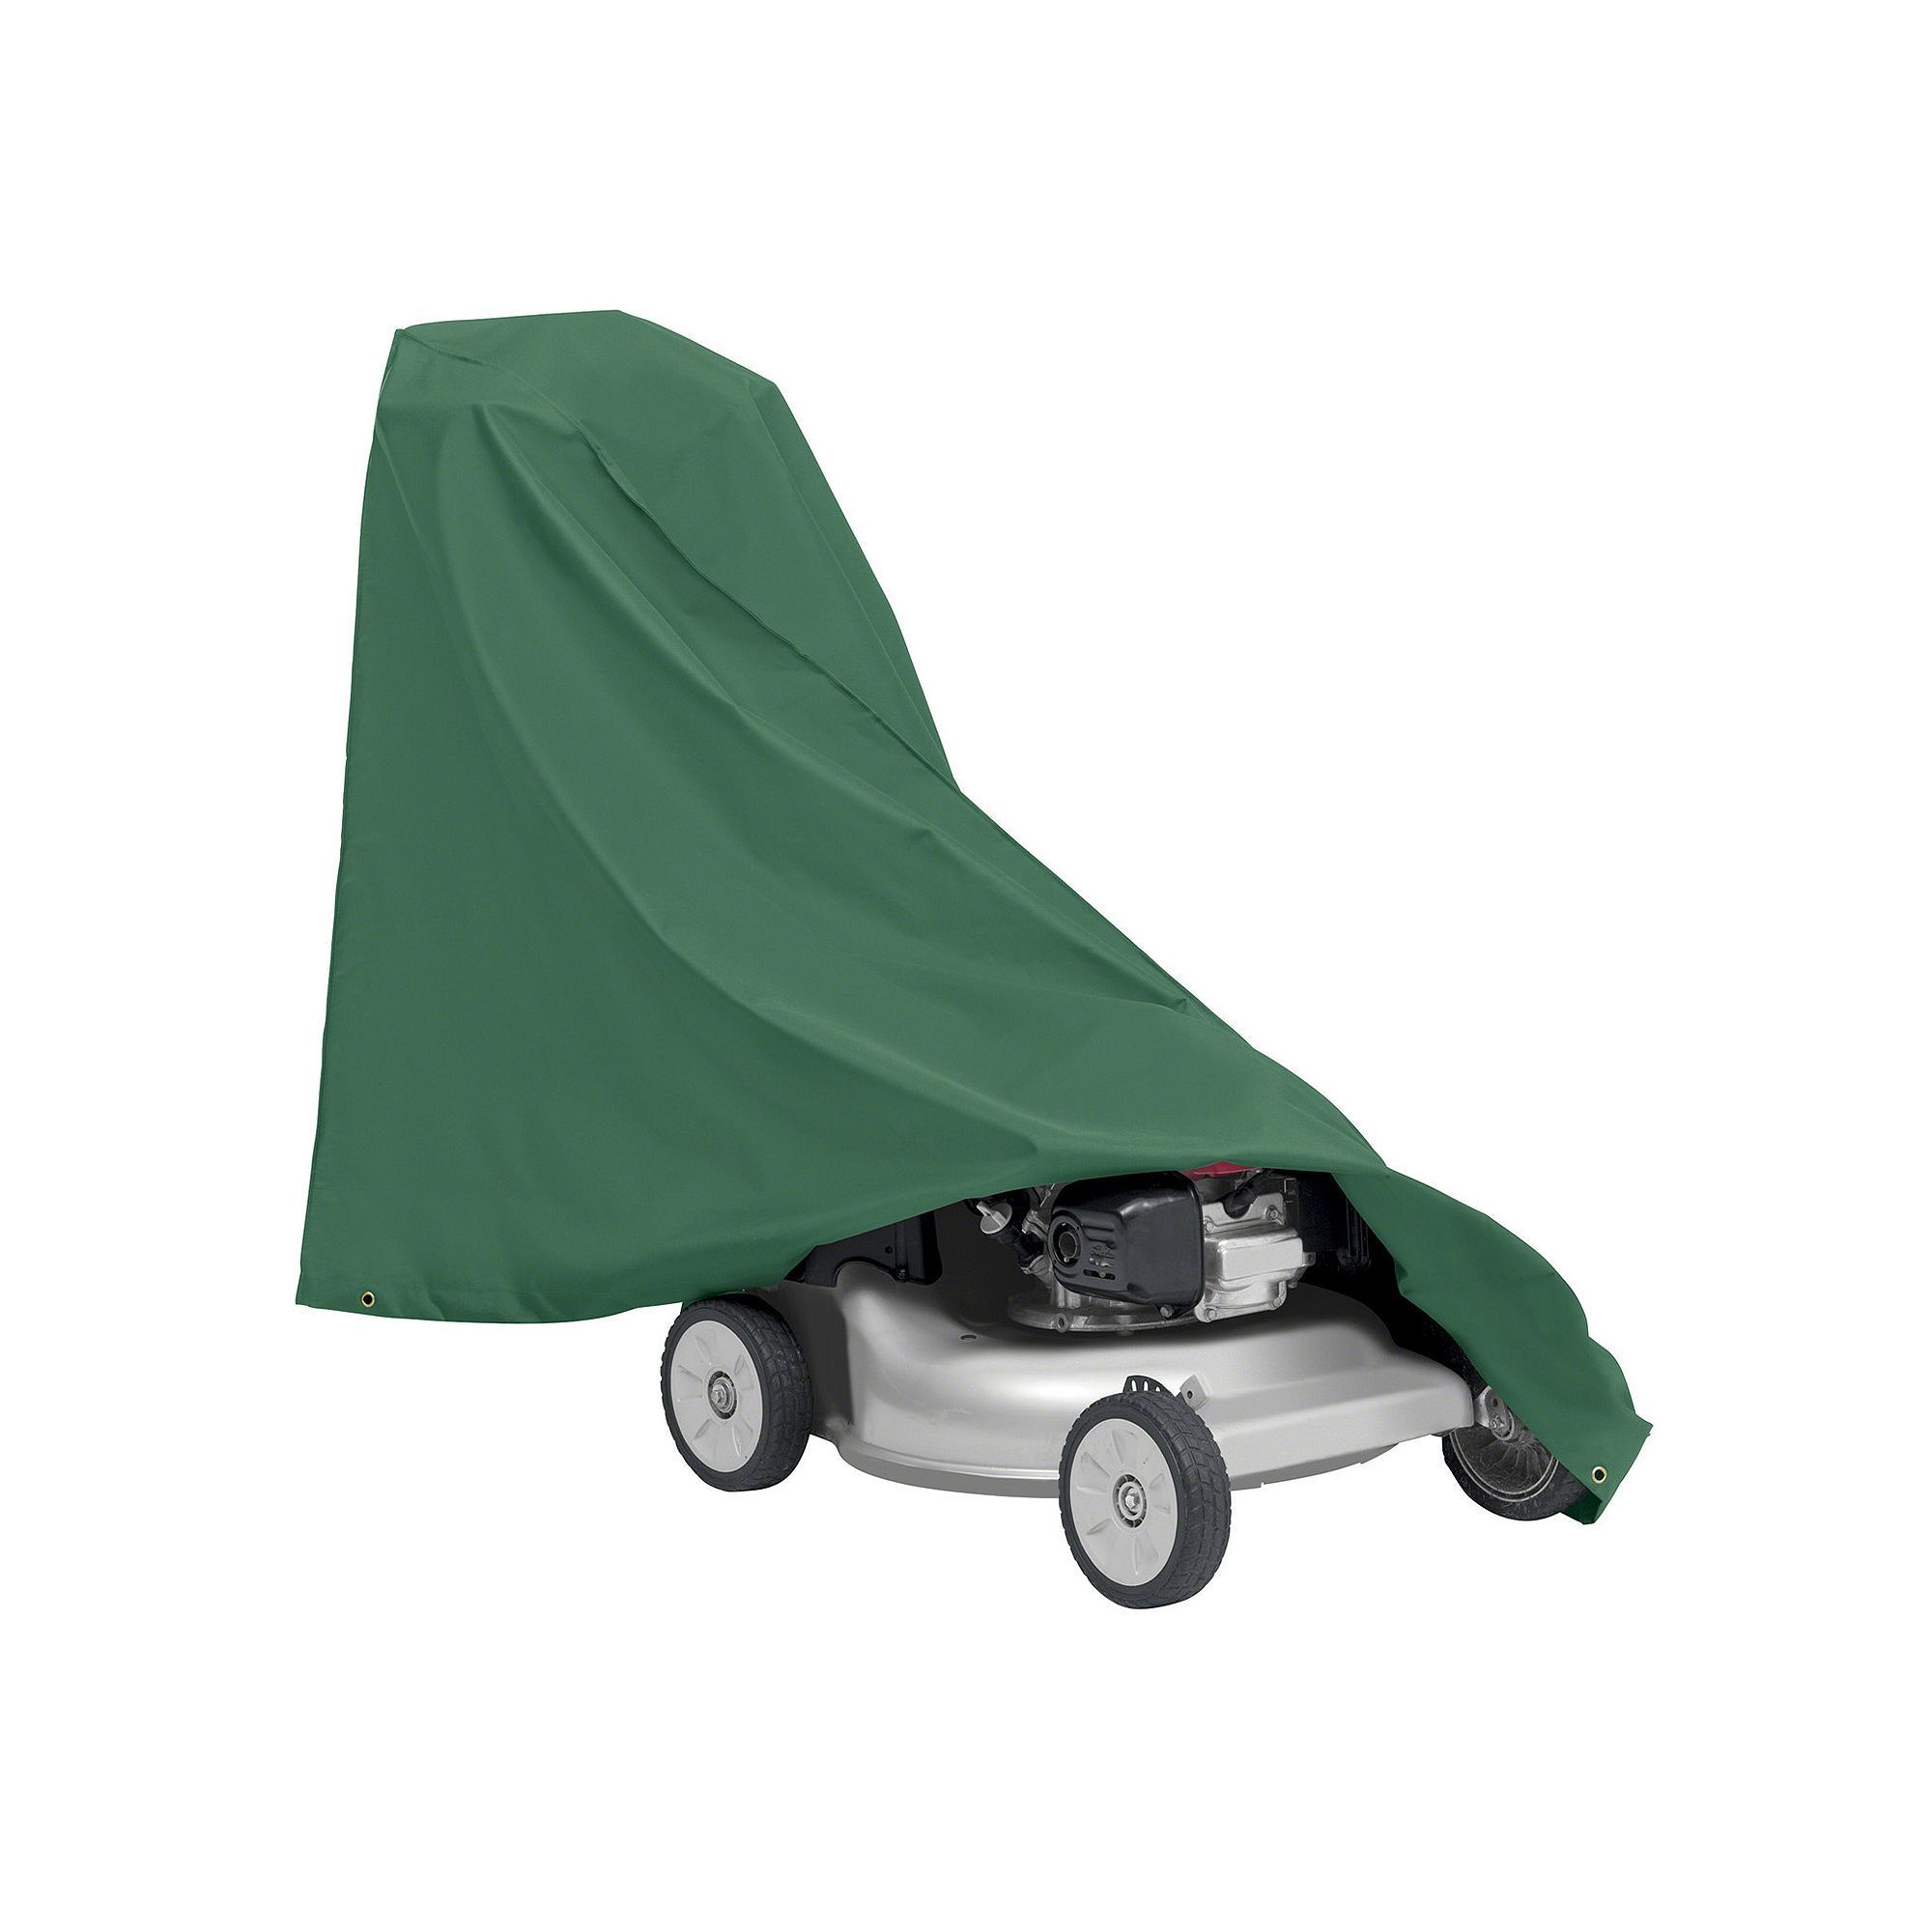 Classic Accessories Atrium Lawn Mower Cover